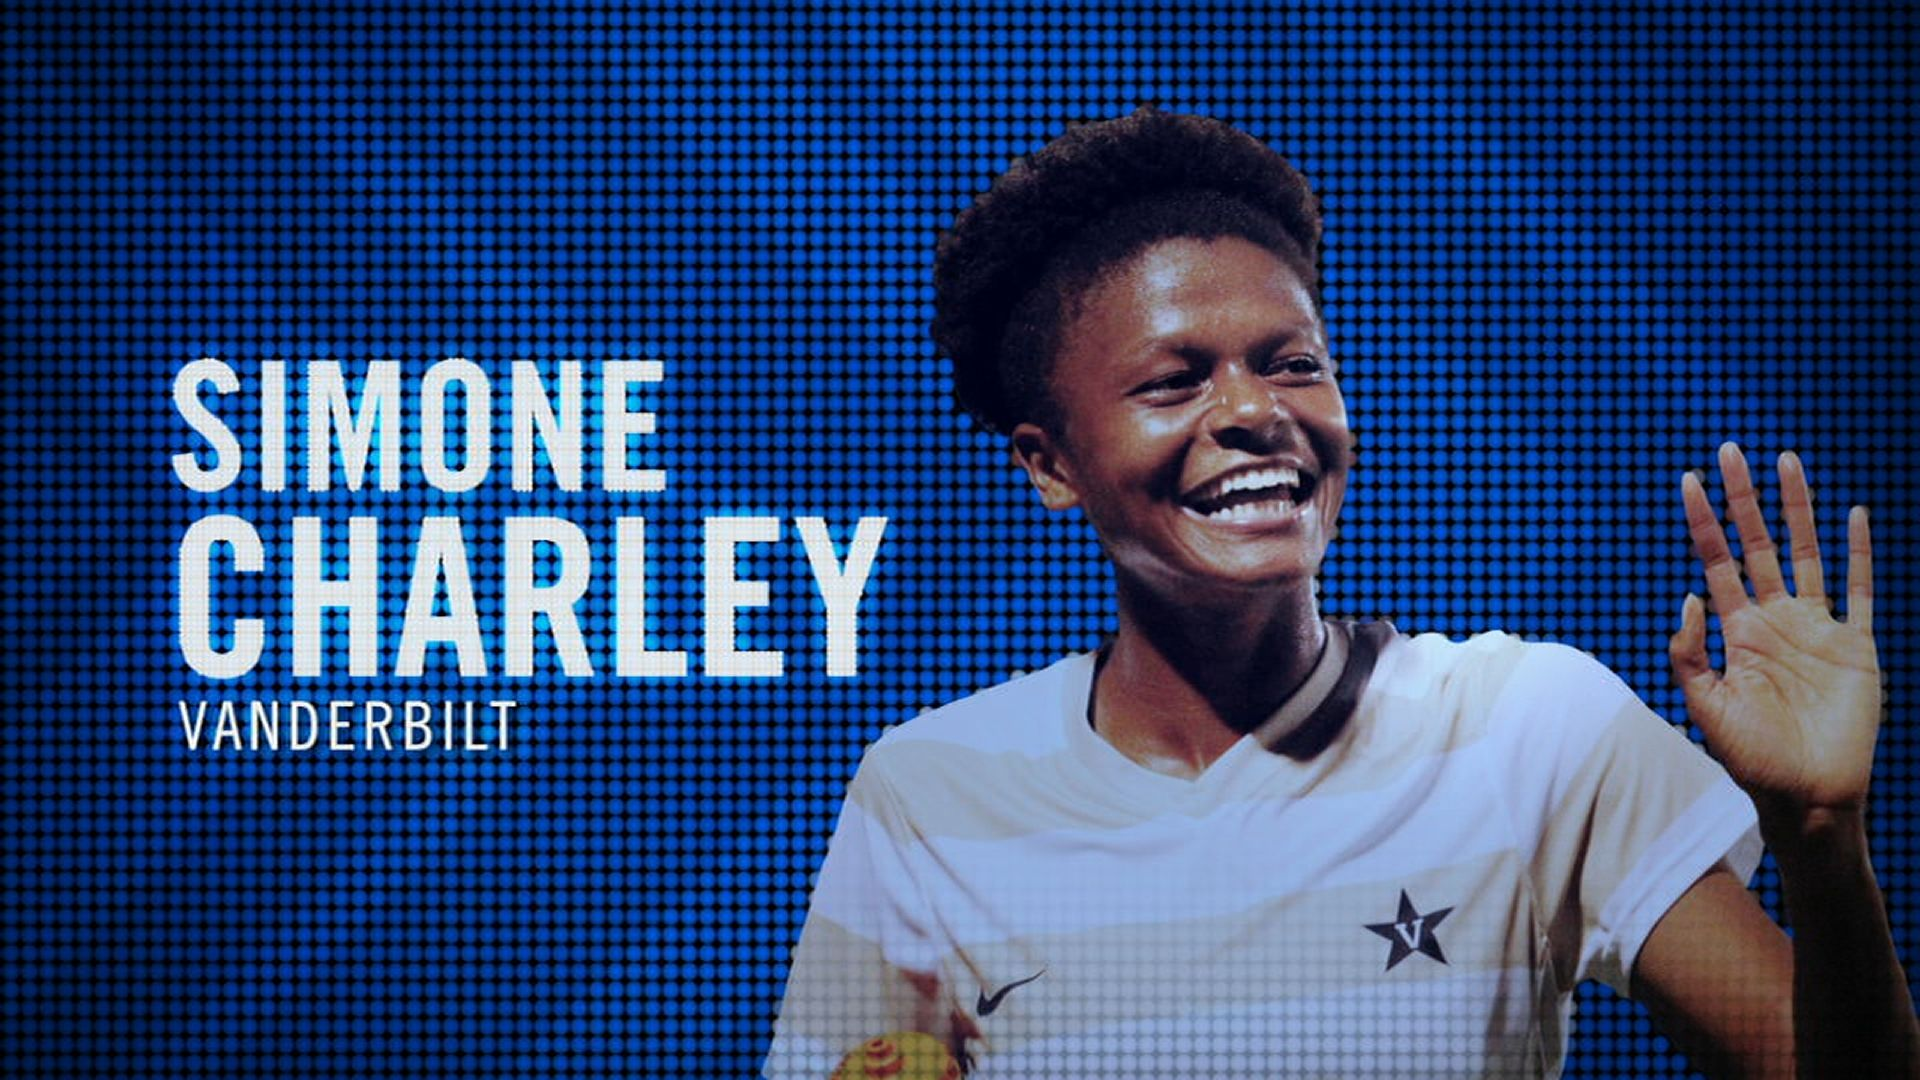 I am the SEC: Vanderbilt's Simone Charley